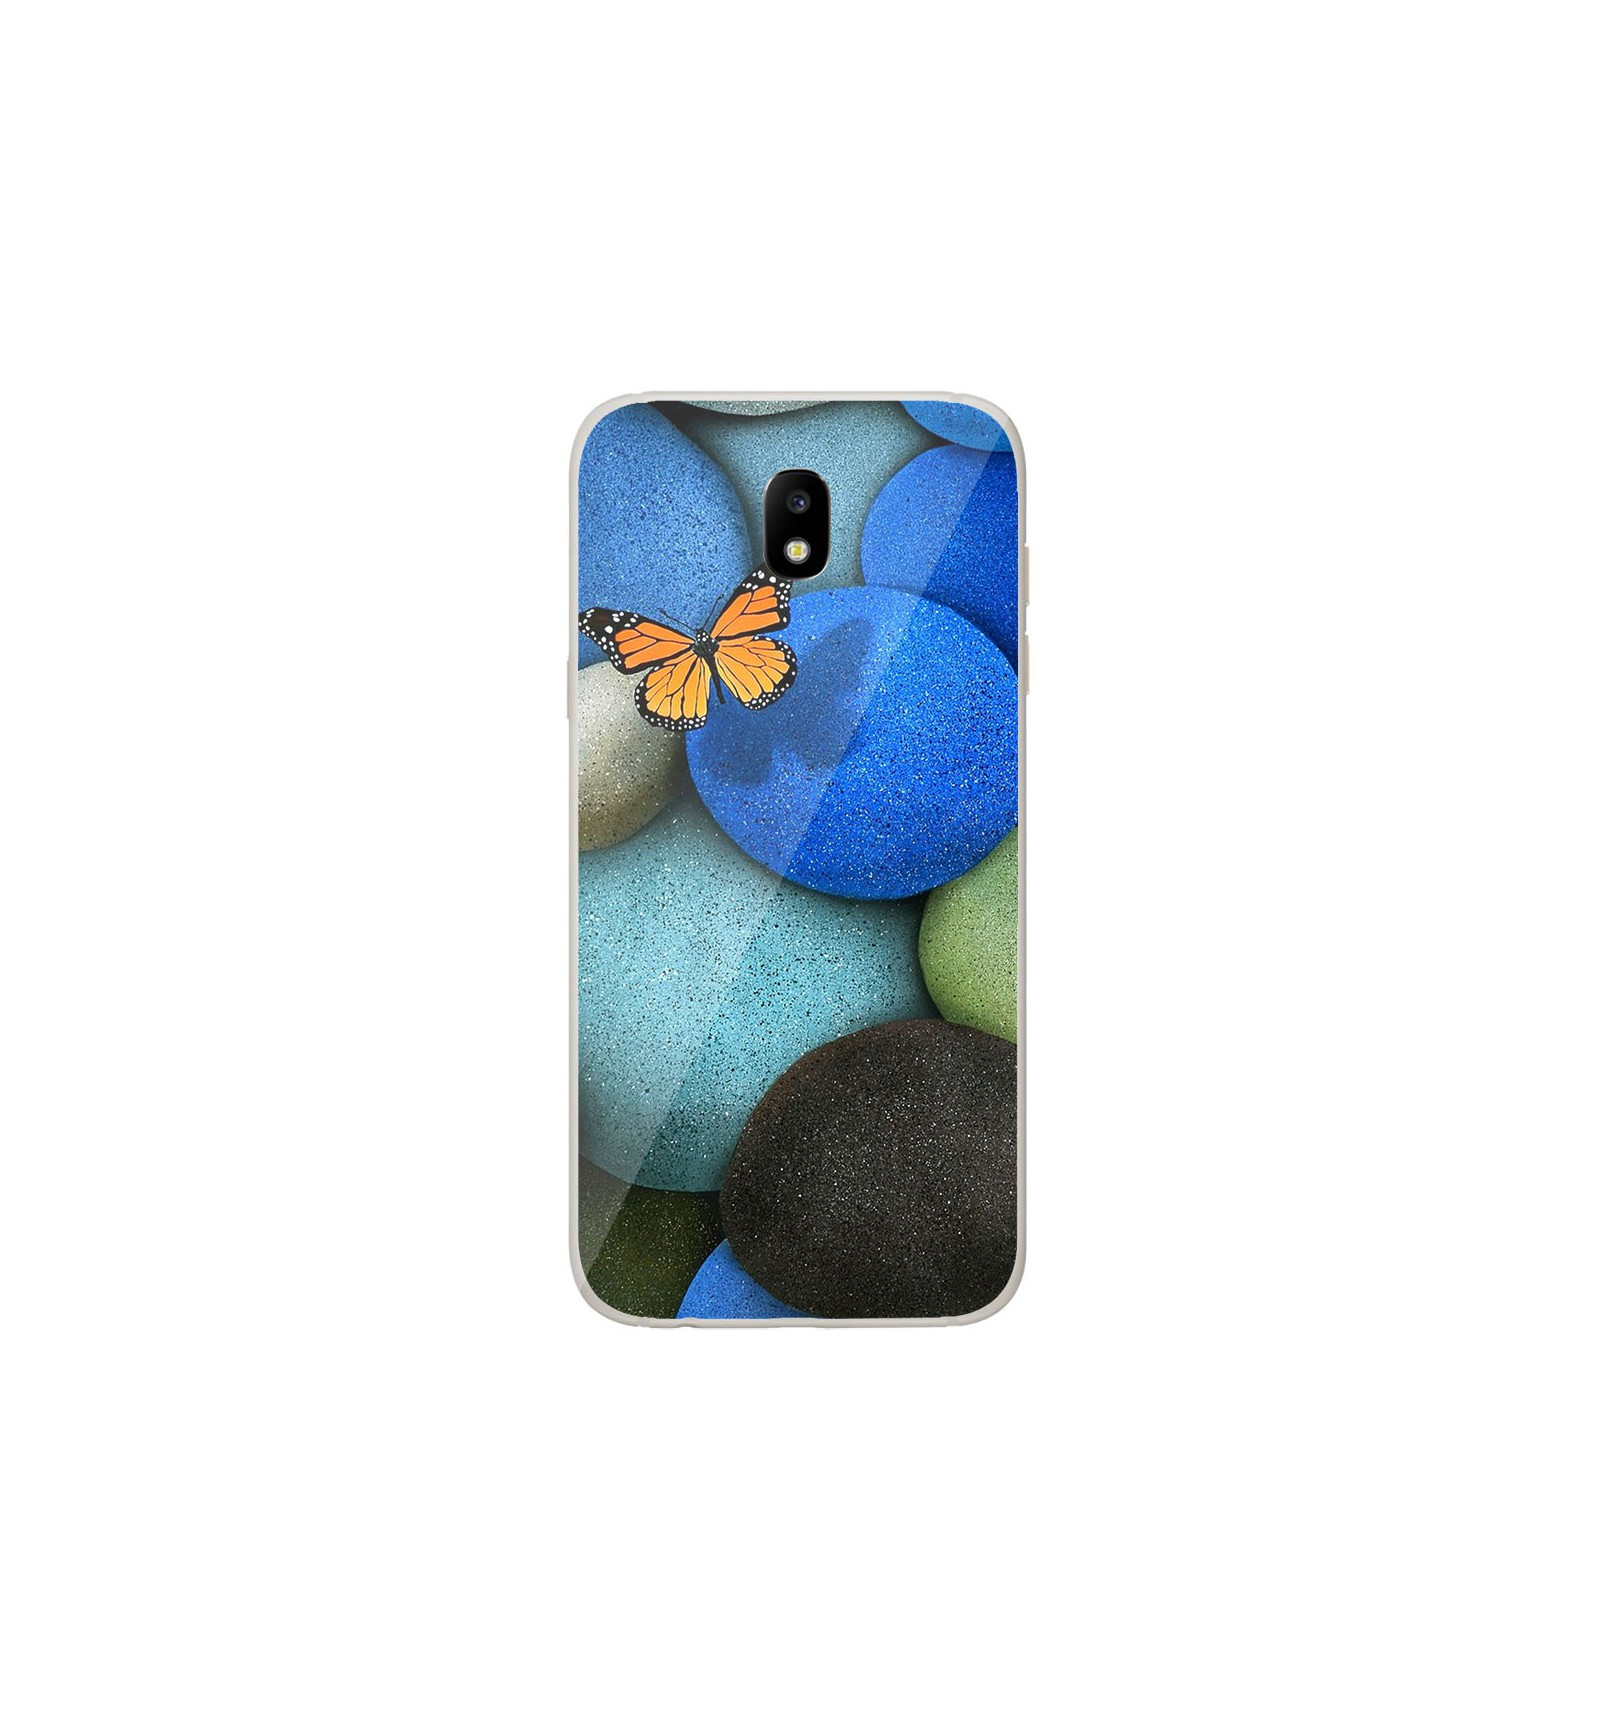 coque en silicone samsung galaxy j3 2017 papillon galet bleu. Black Bedroom Furniture Sets. Home Design Ideas